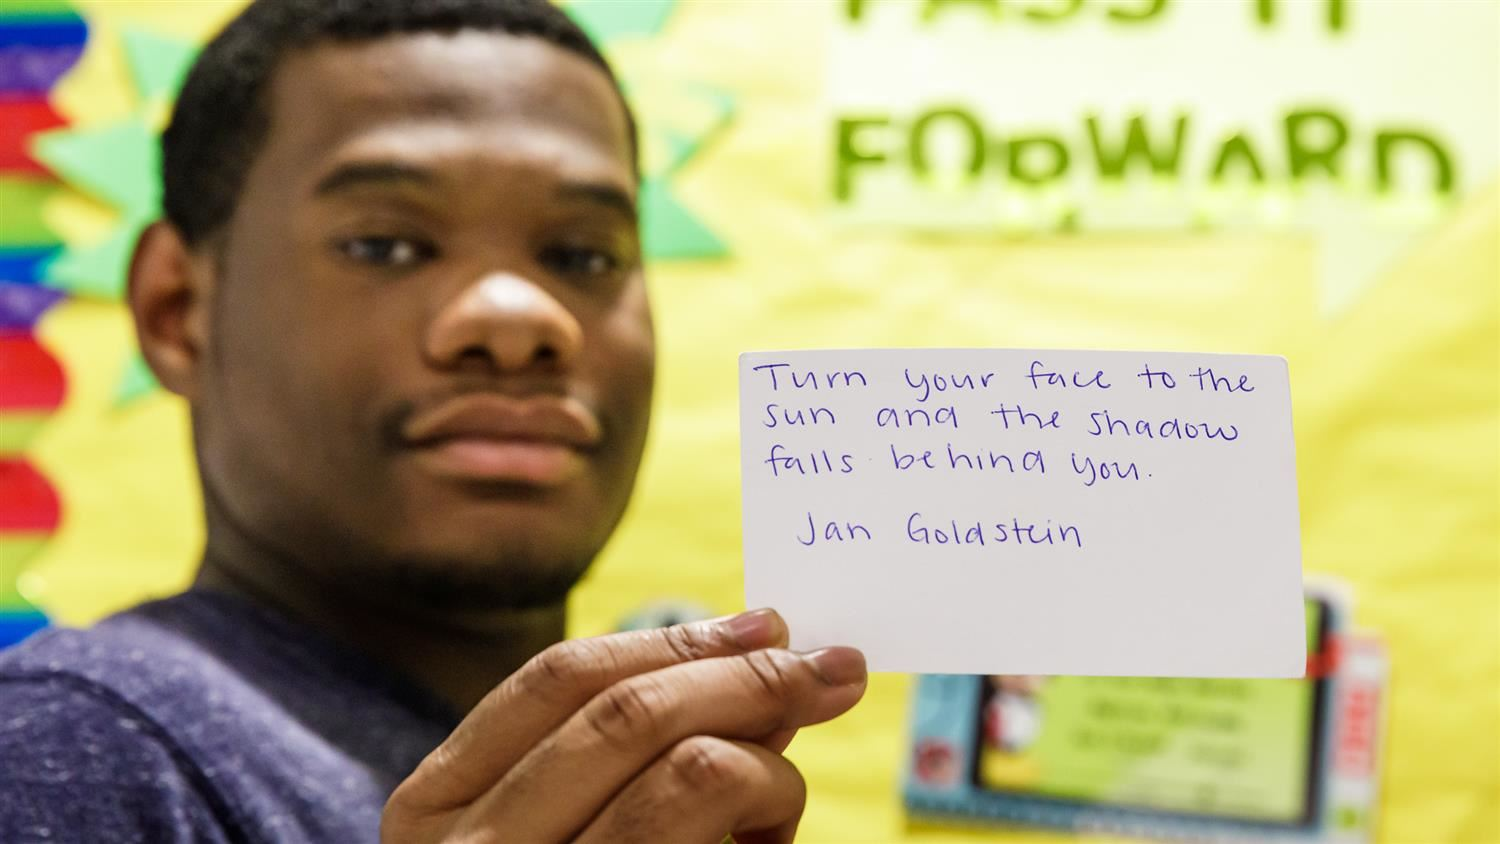 Jeremee Jeter shows one of his Pass It Forward Club's quotes